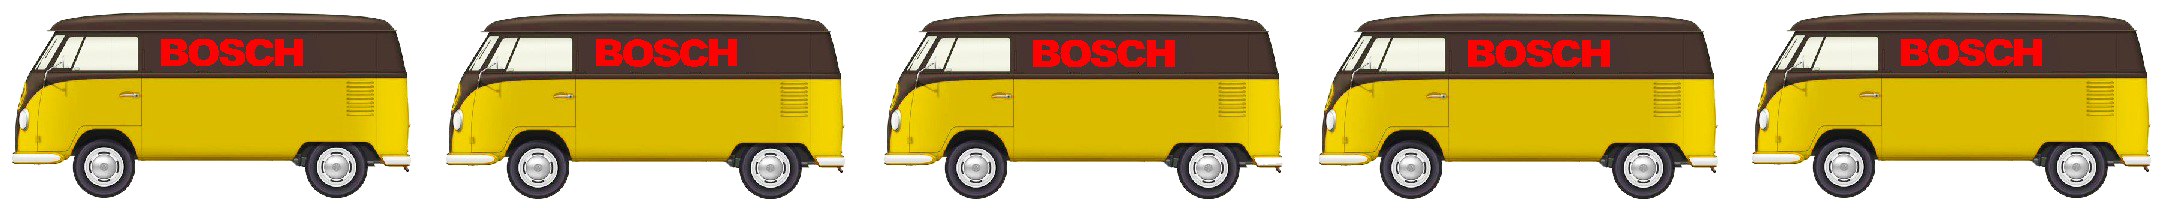 retro-racer-uk-suppliers-sellers-of-classic-bosch-knick-rally-race-spot-fot-lights-lamps